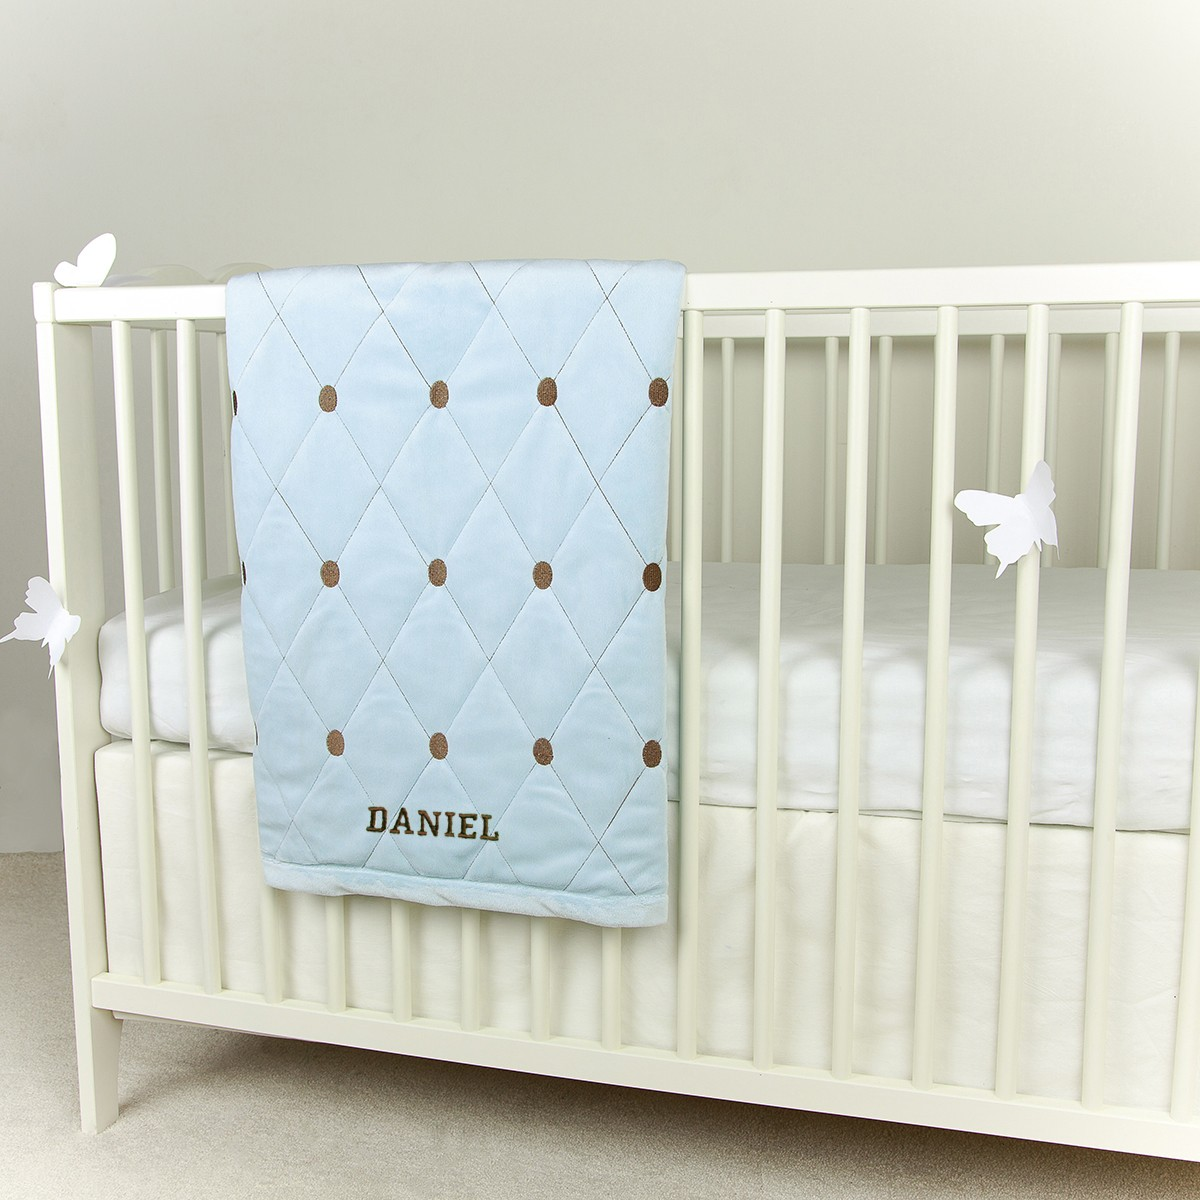 Unique Baby Blankets For Boys